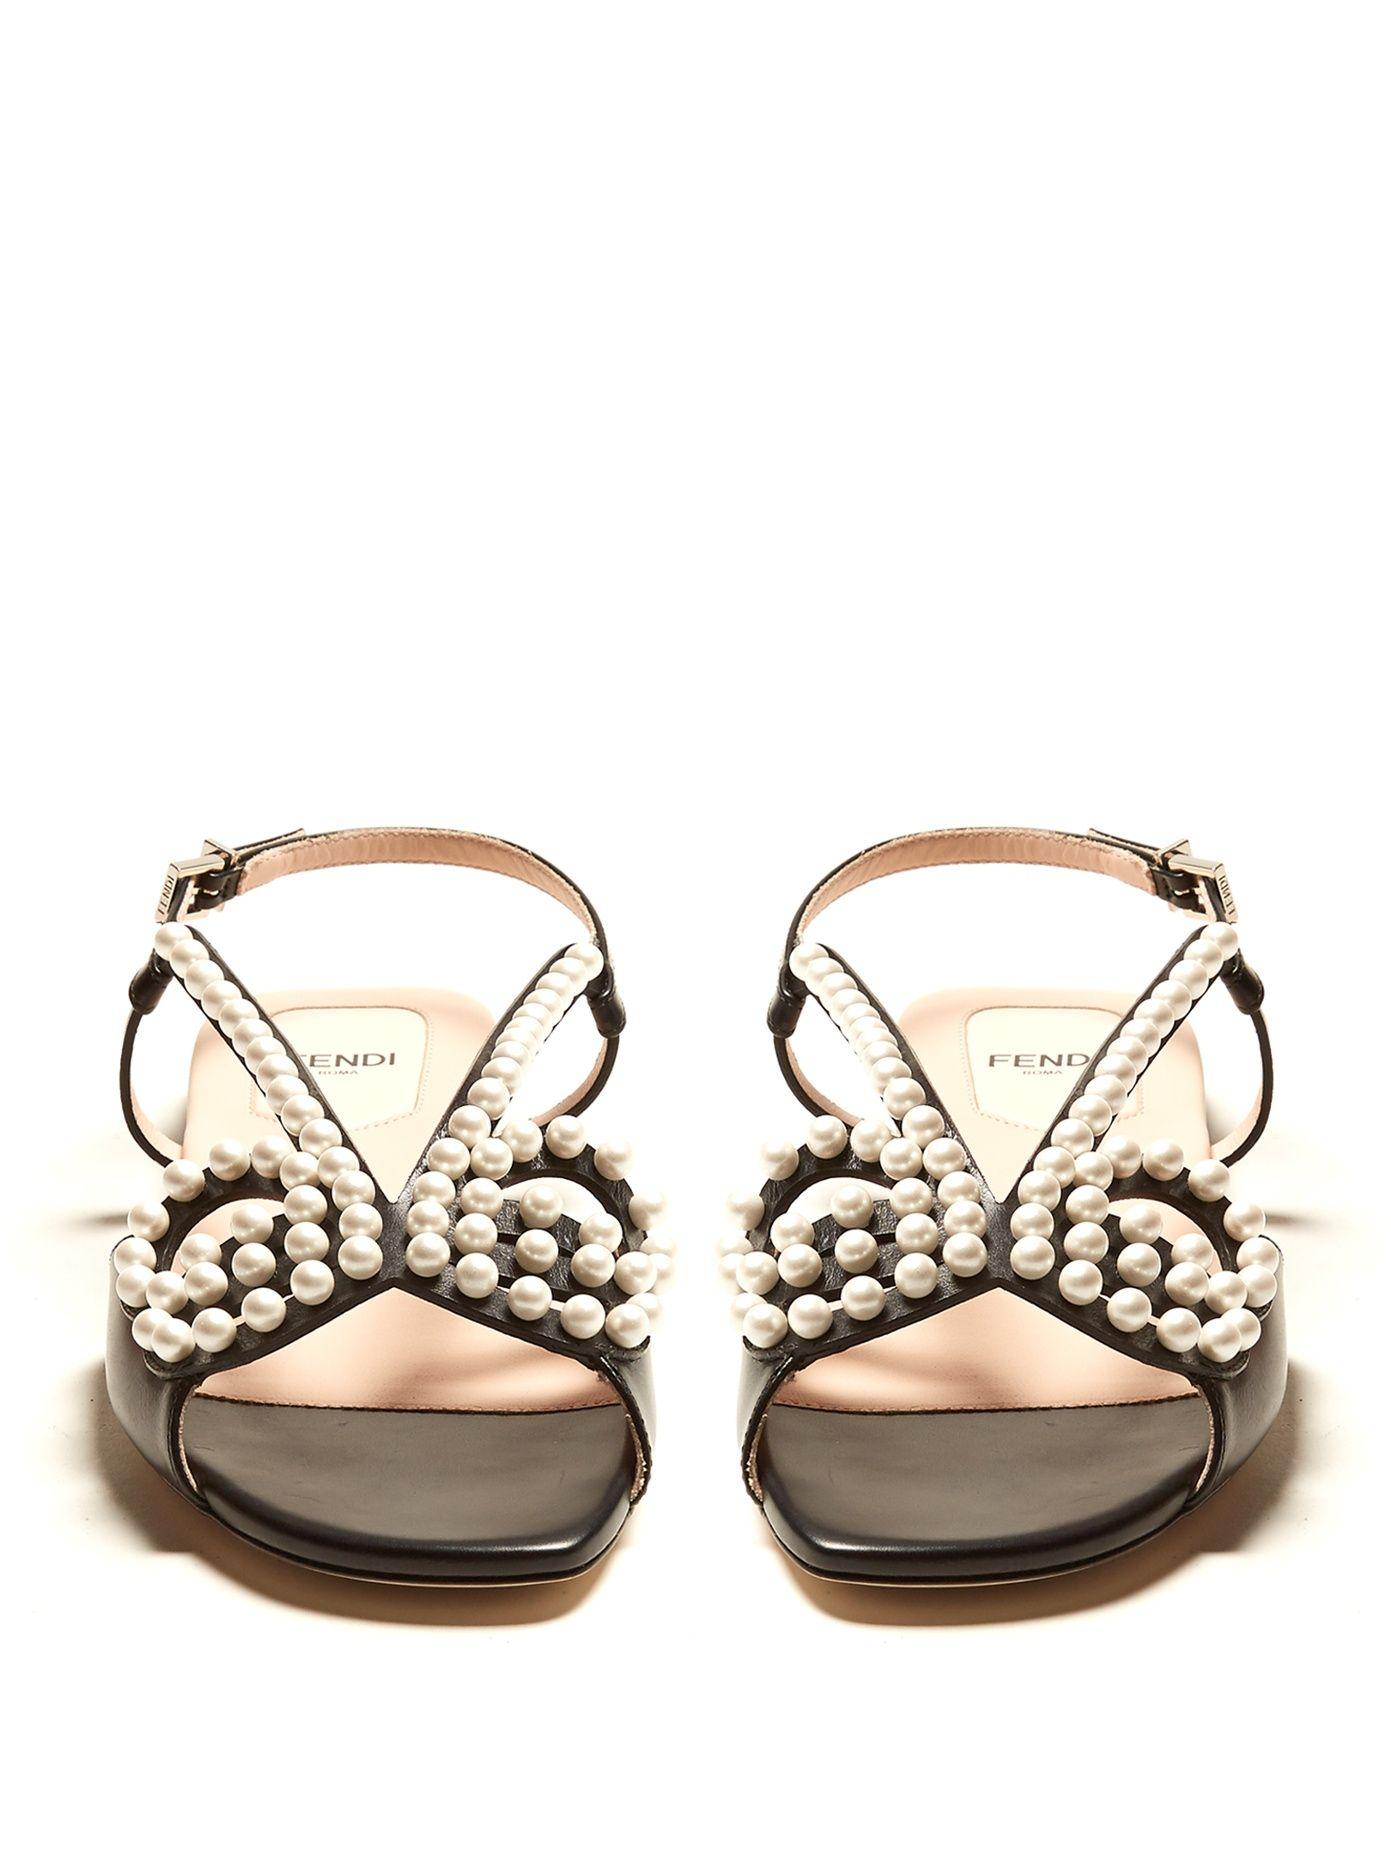 3017ce080a0 Click here to buy Fendi Pearl Land embellished leather sandals at  MATCHESFASHION.COM